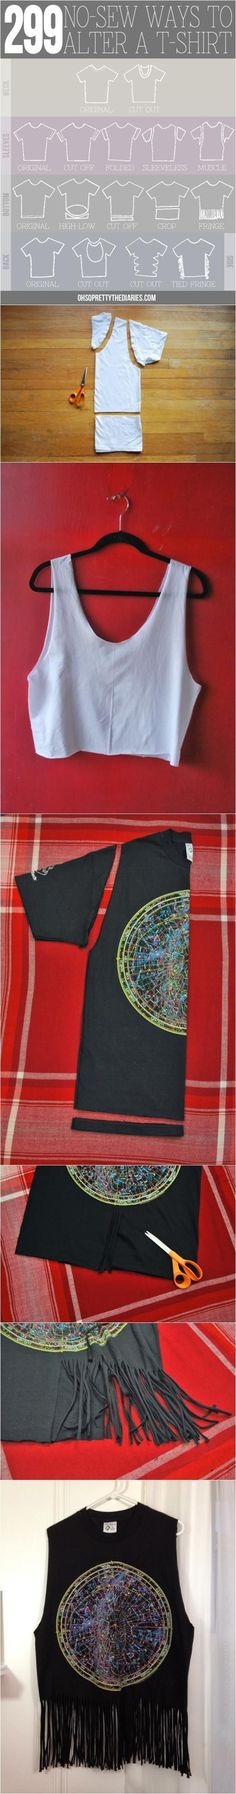 Hey Wanderer: 299 no-sew ways to alter a t-shirt | DIY Fun Tips More